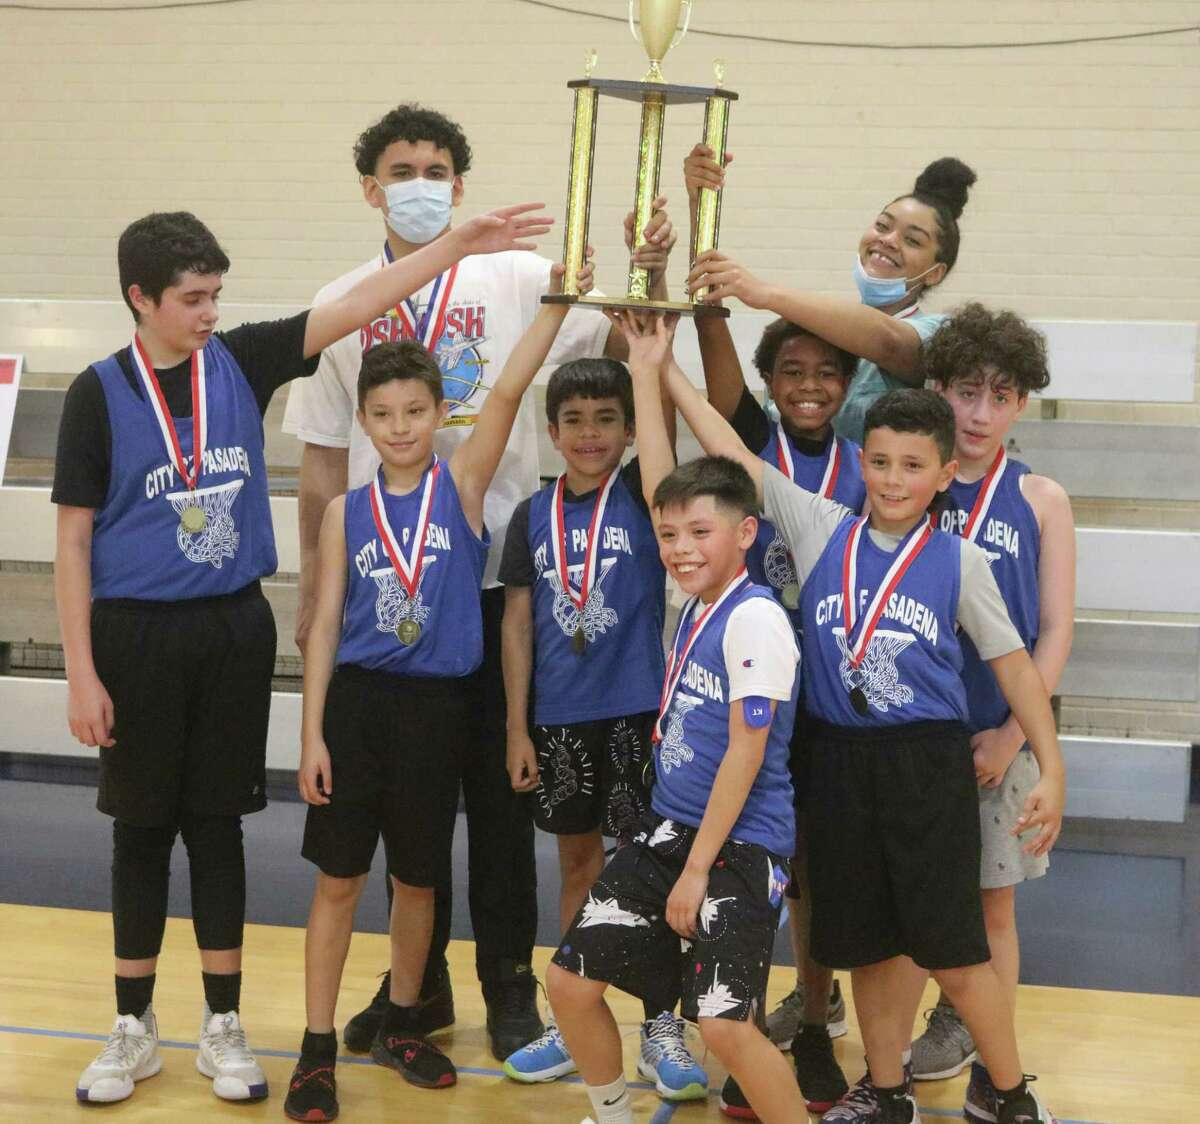 Members of the Faith basketball team hoist their city championship trophy after winning the 11 and 12-year-old division at PAL Gym Saturday.